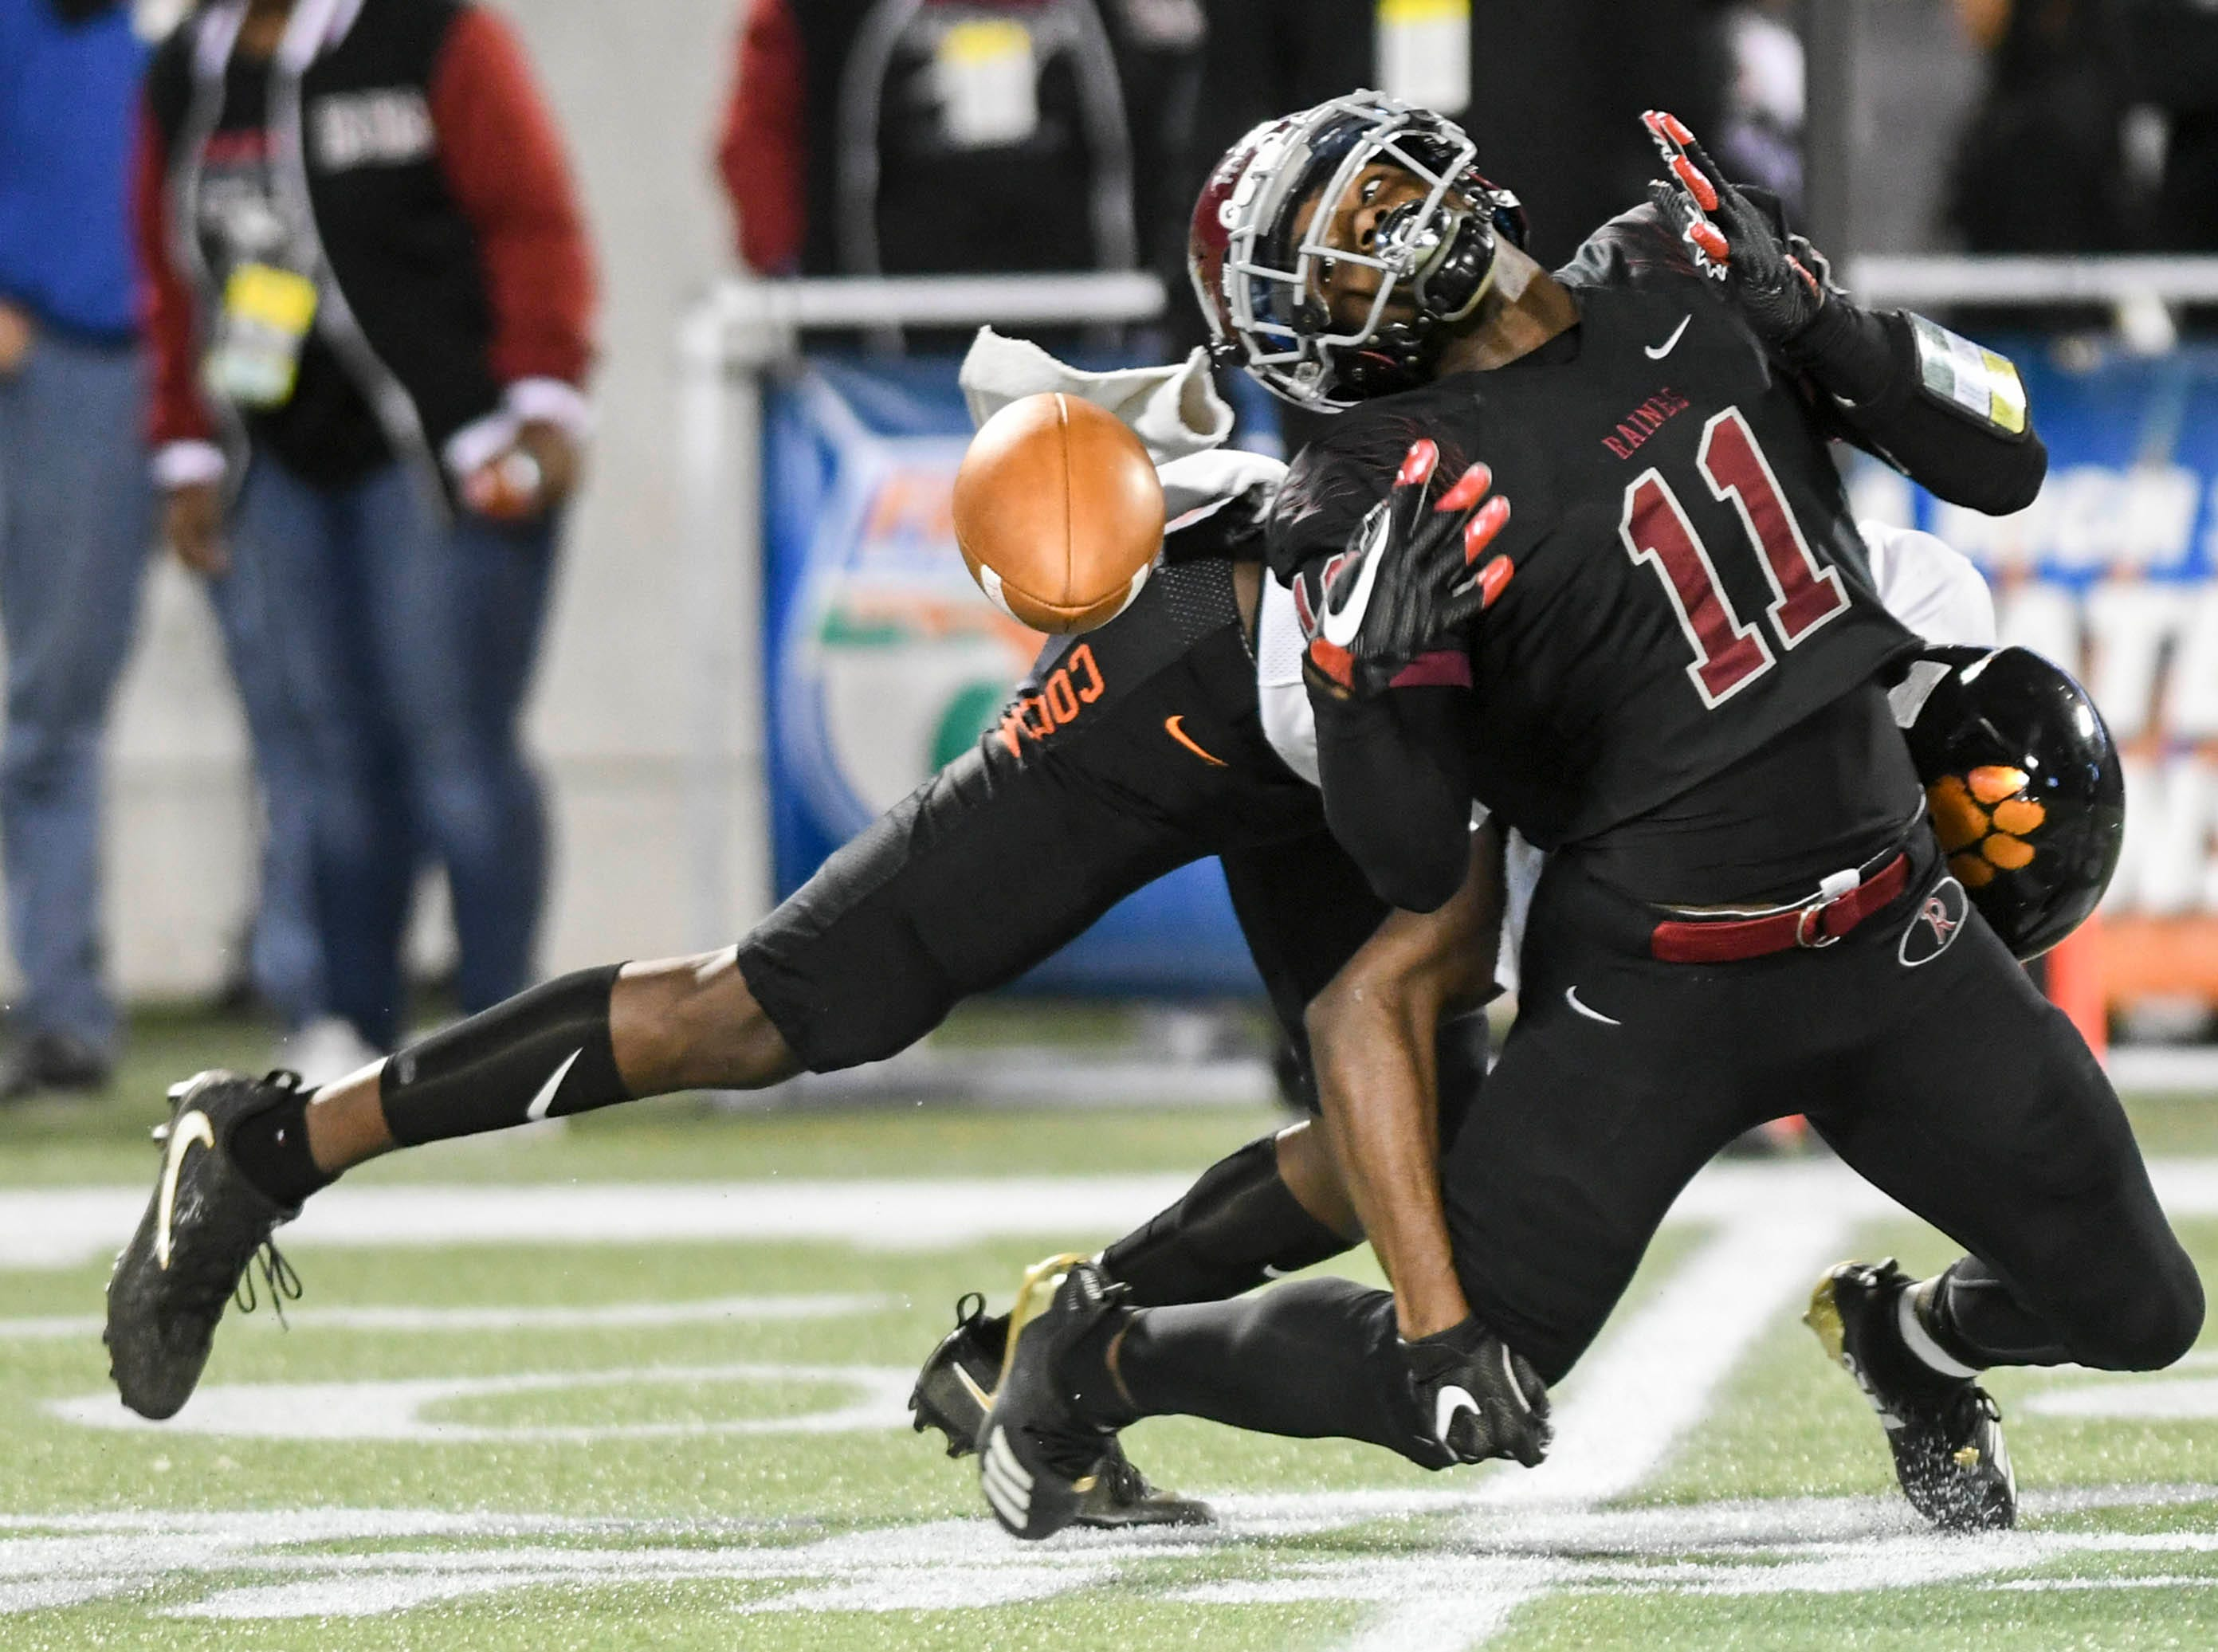 Cocoa's Charlie Thompson breaks up a pass intended for Jamari Williams of Raines (11) during Thursday's Class 4A football state championship.